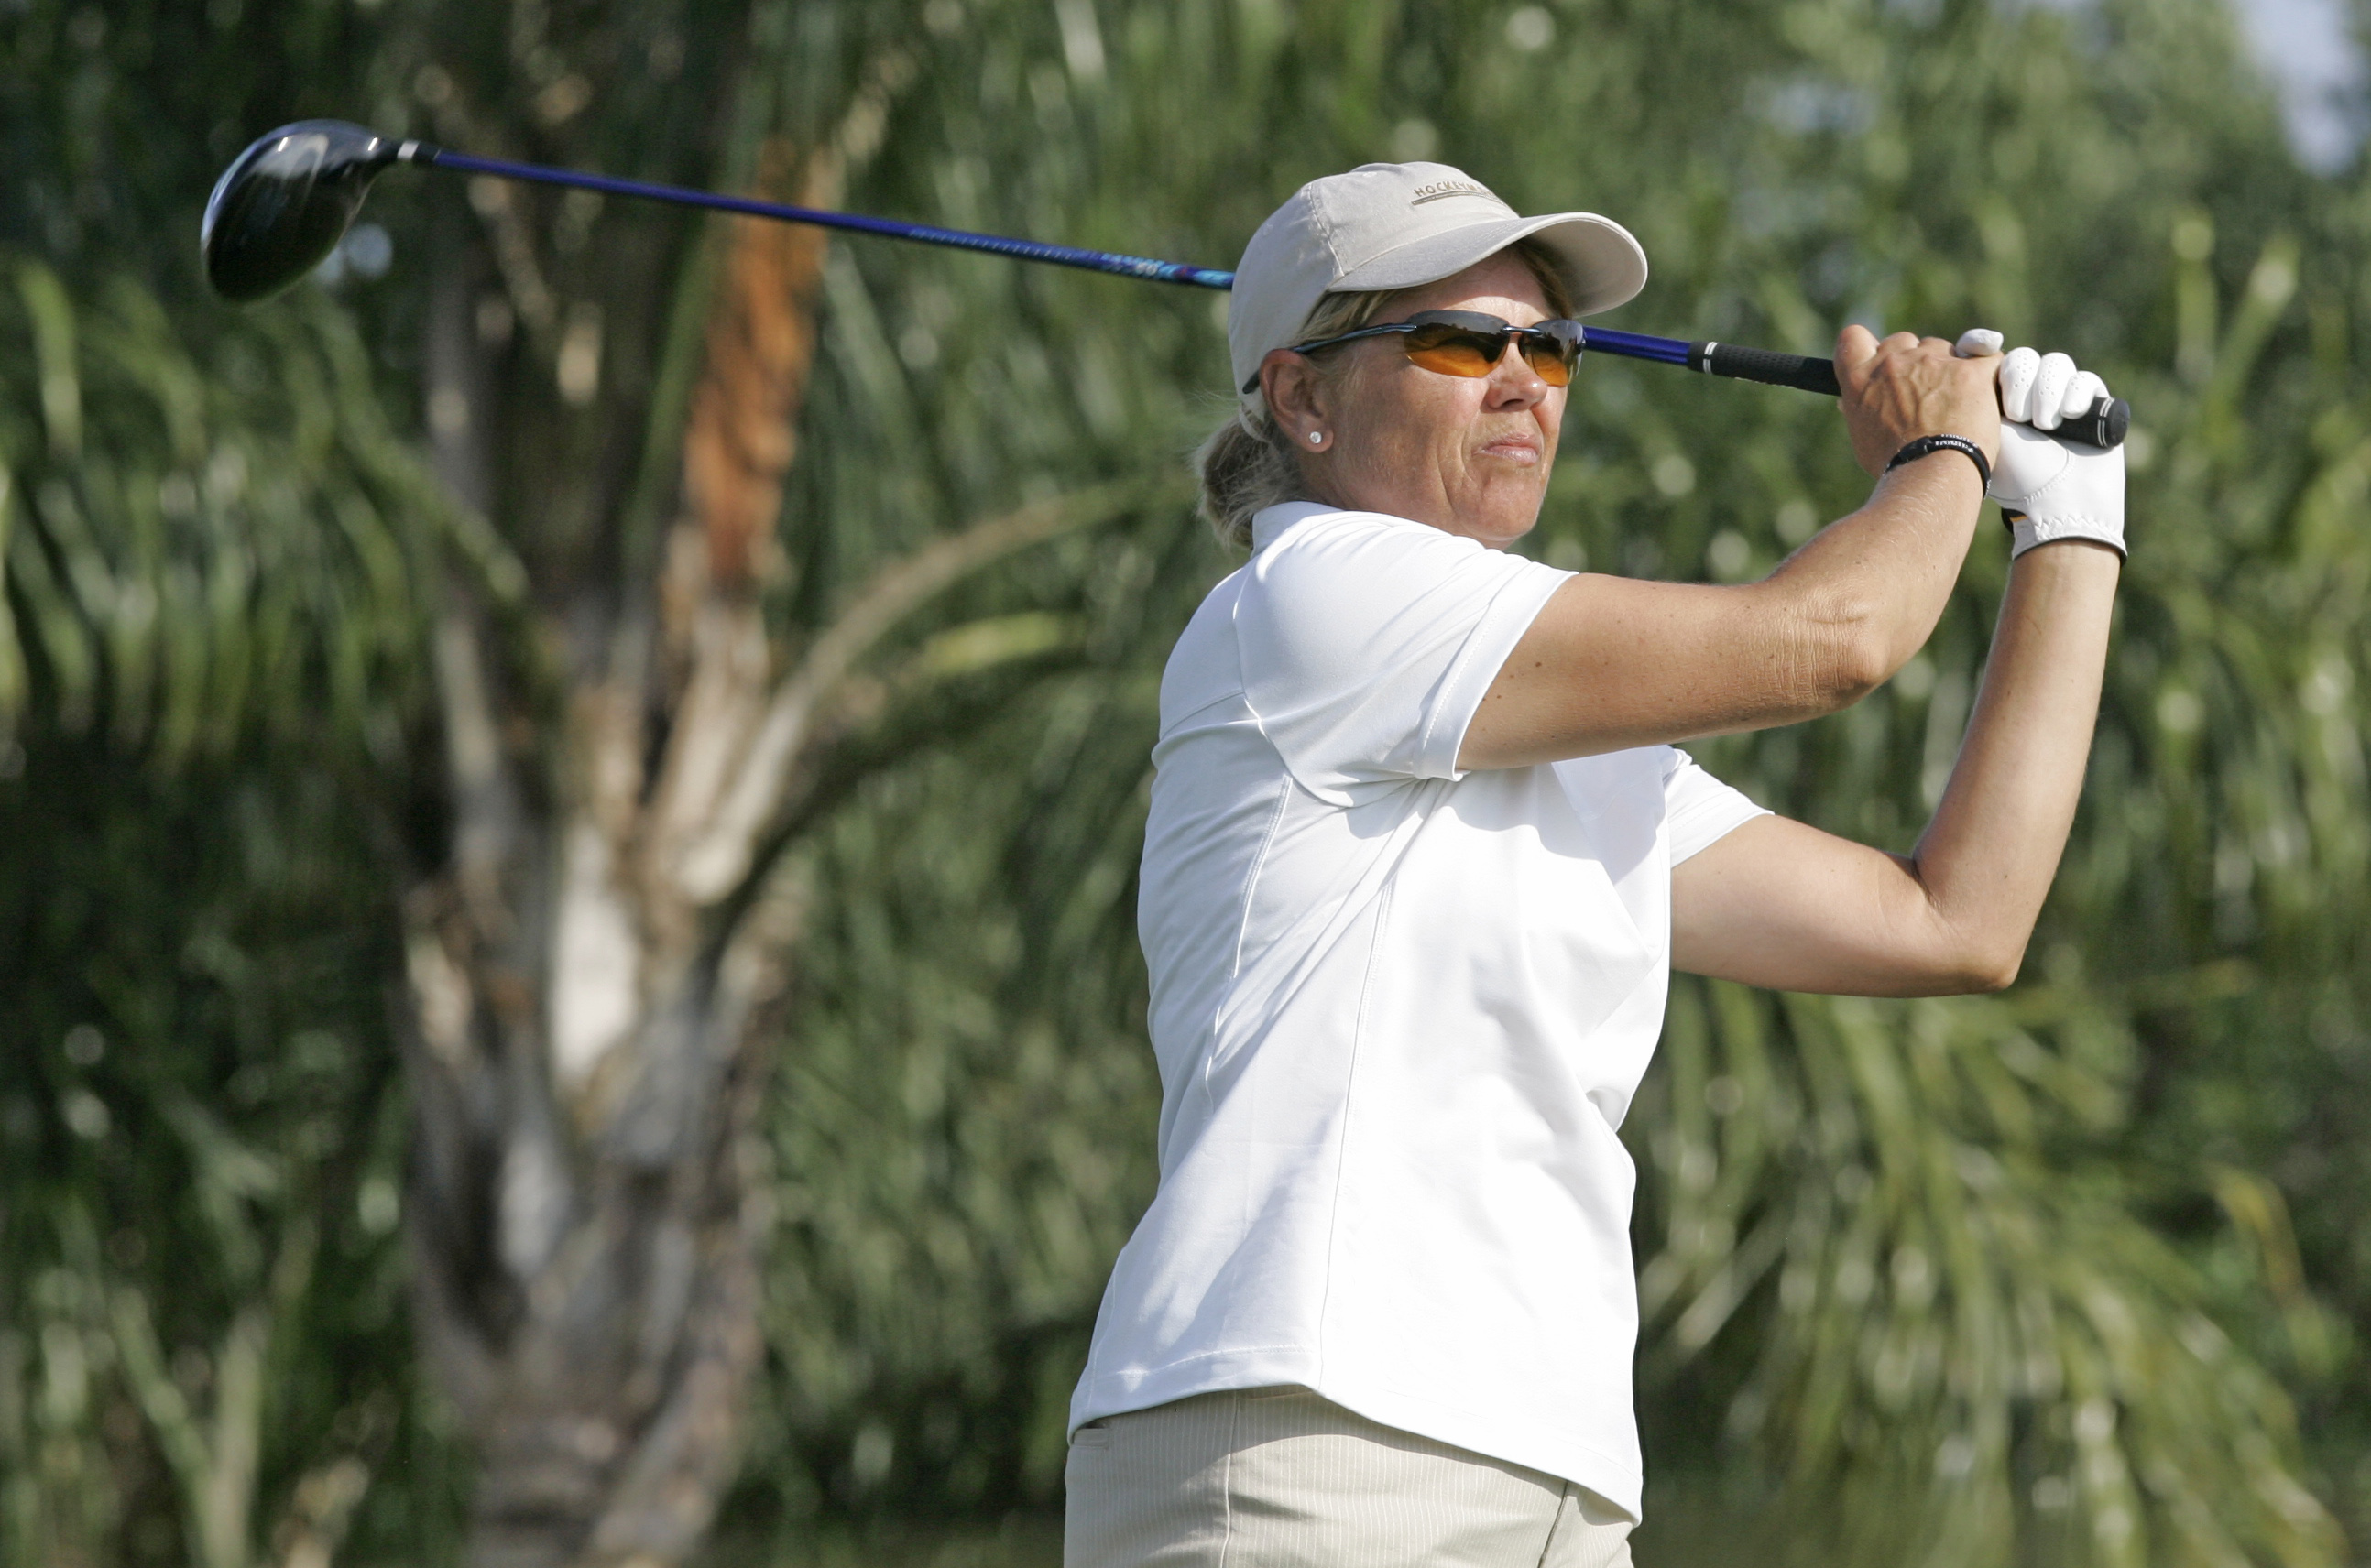 Dawn Coe-Jones, of Canada, tees off on the 18th hole during the first round of the Ginn Open LPGA golf tournament in Reunion, Fla., Thursday, April 12, 2007. (AP Photo/John Raoux)